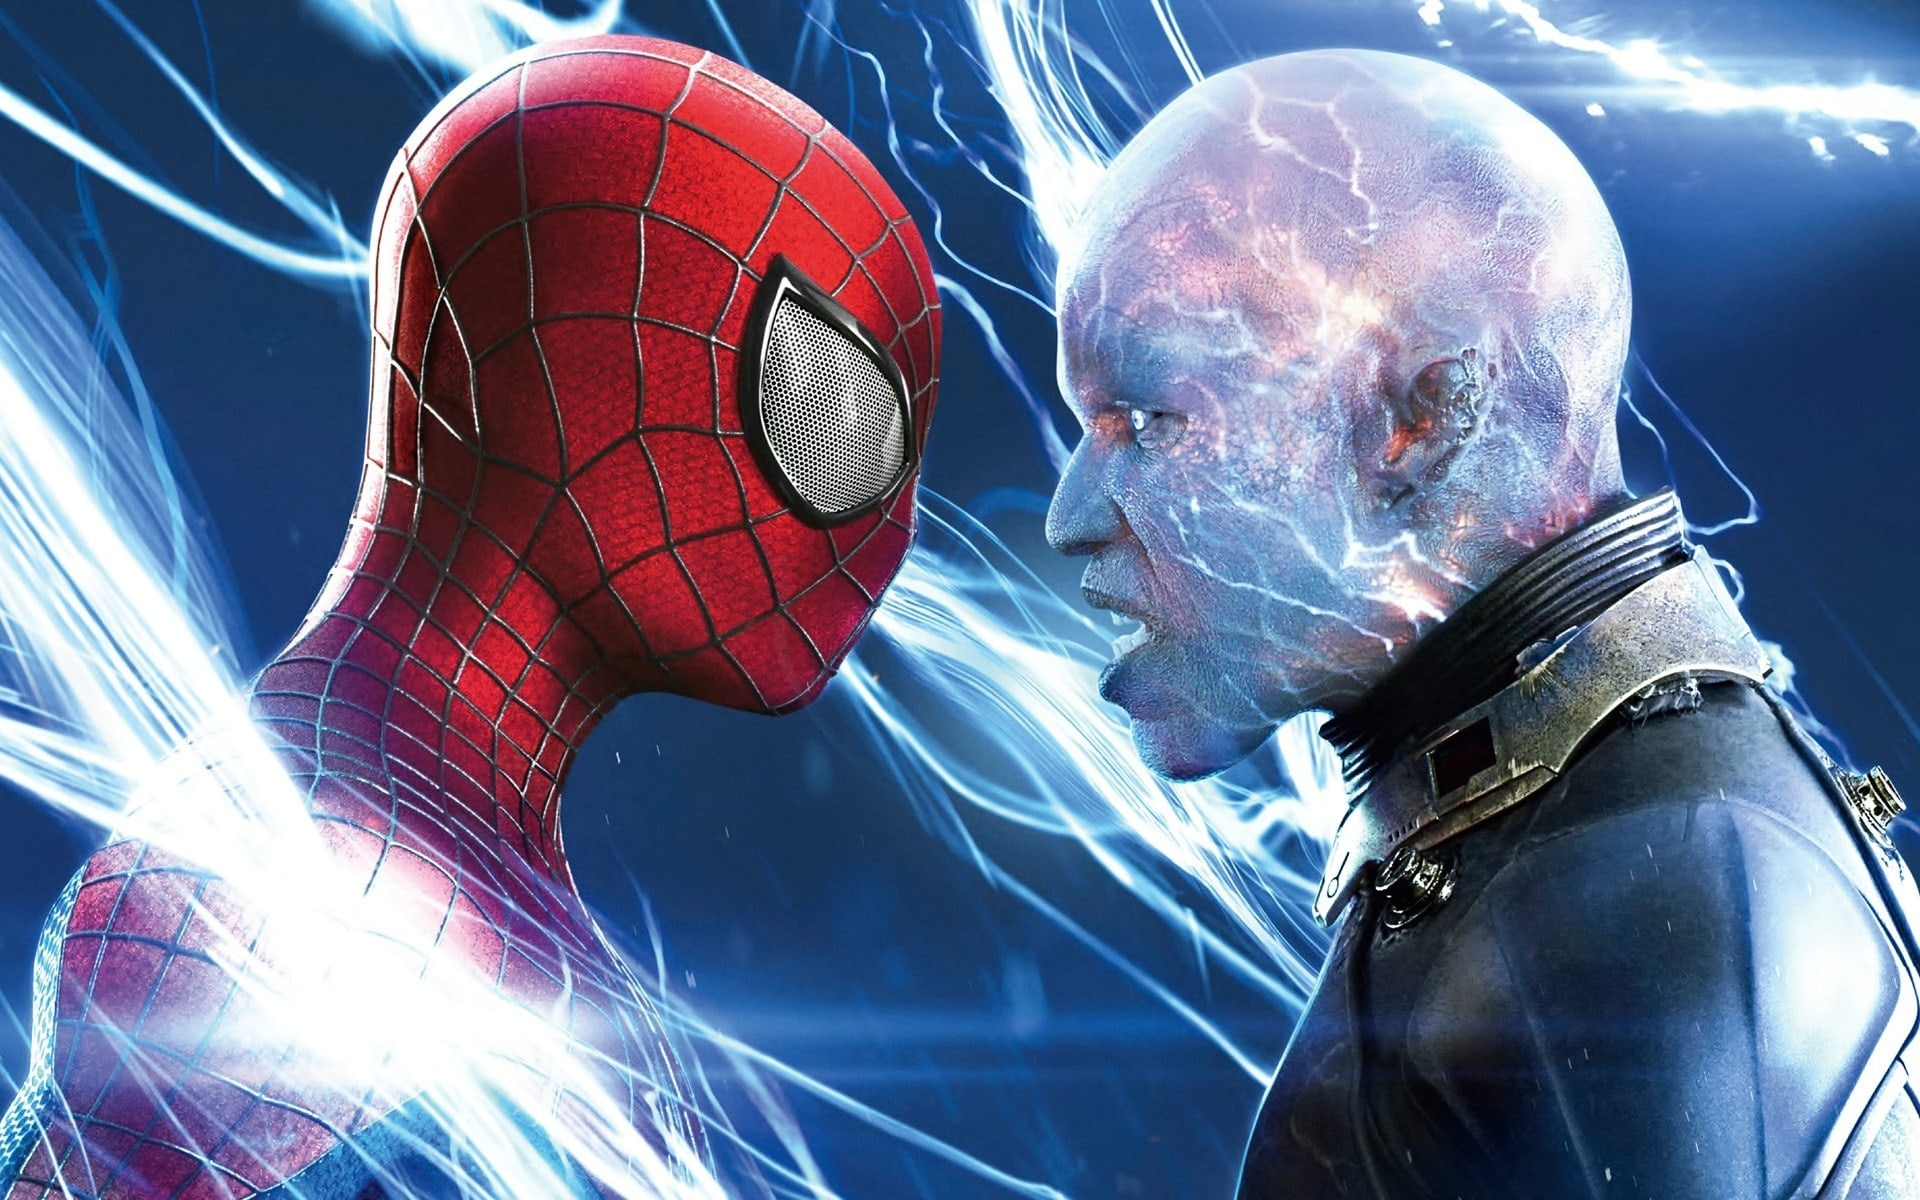 The Amazing Spider Man 2 Hd Wallpapers 7wallpapers Net